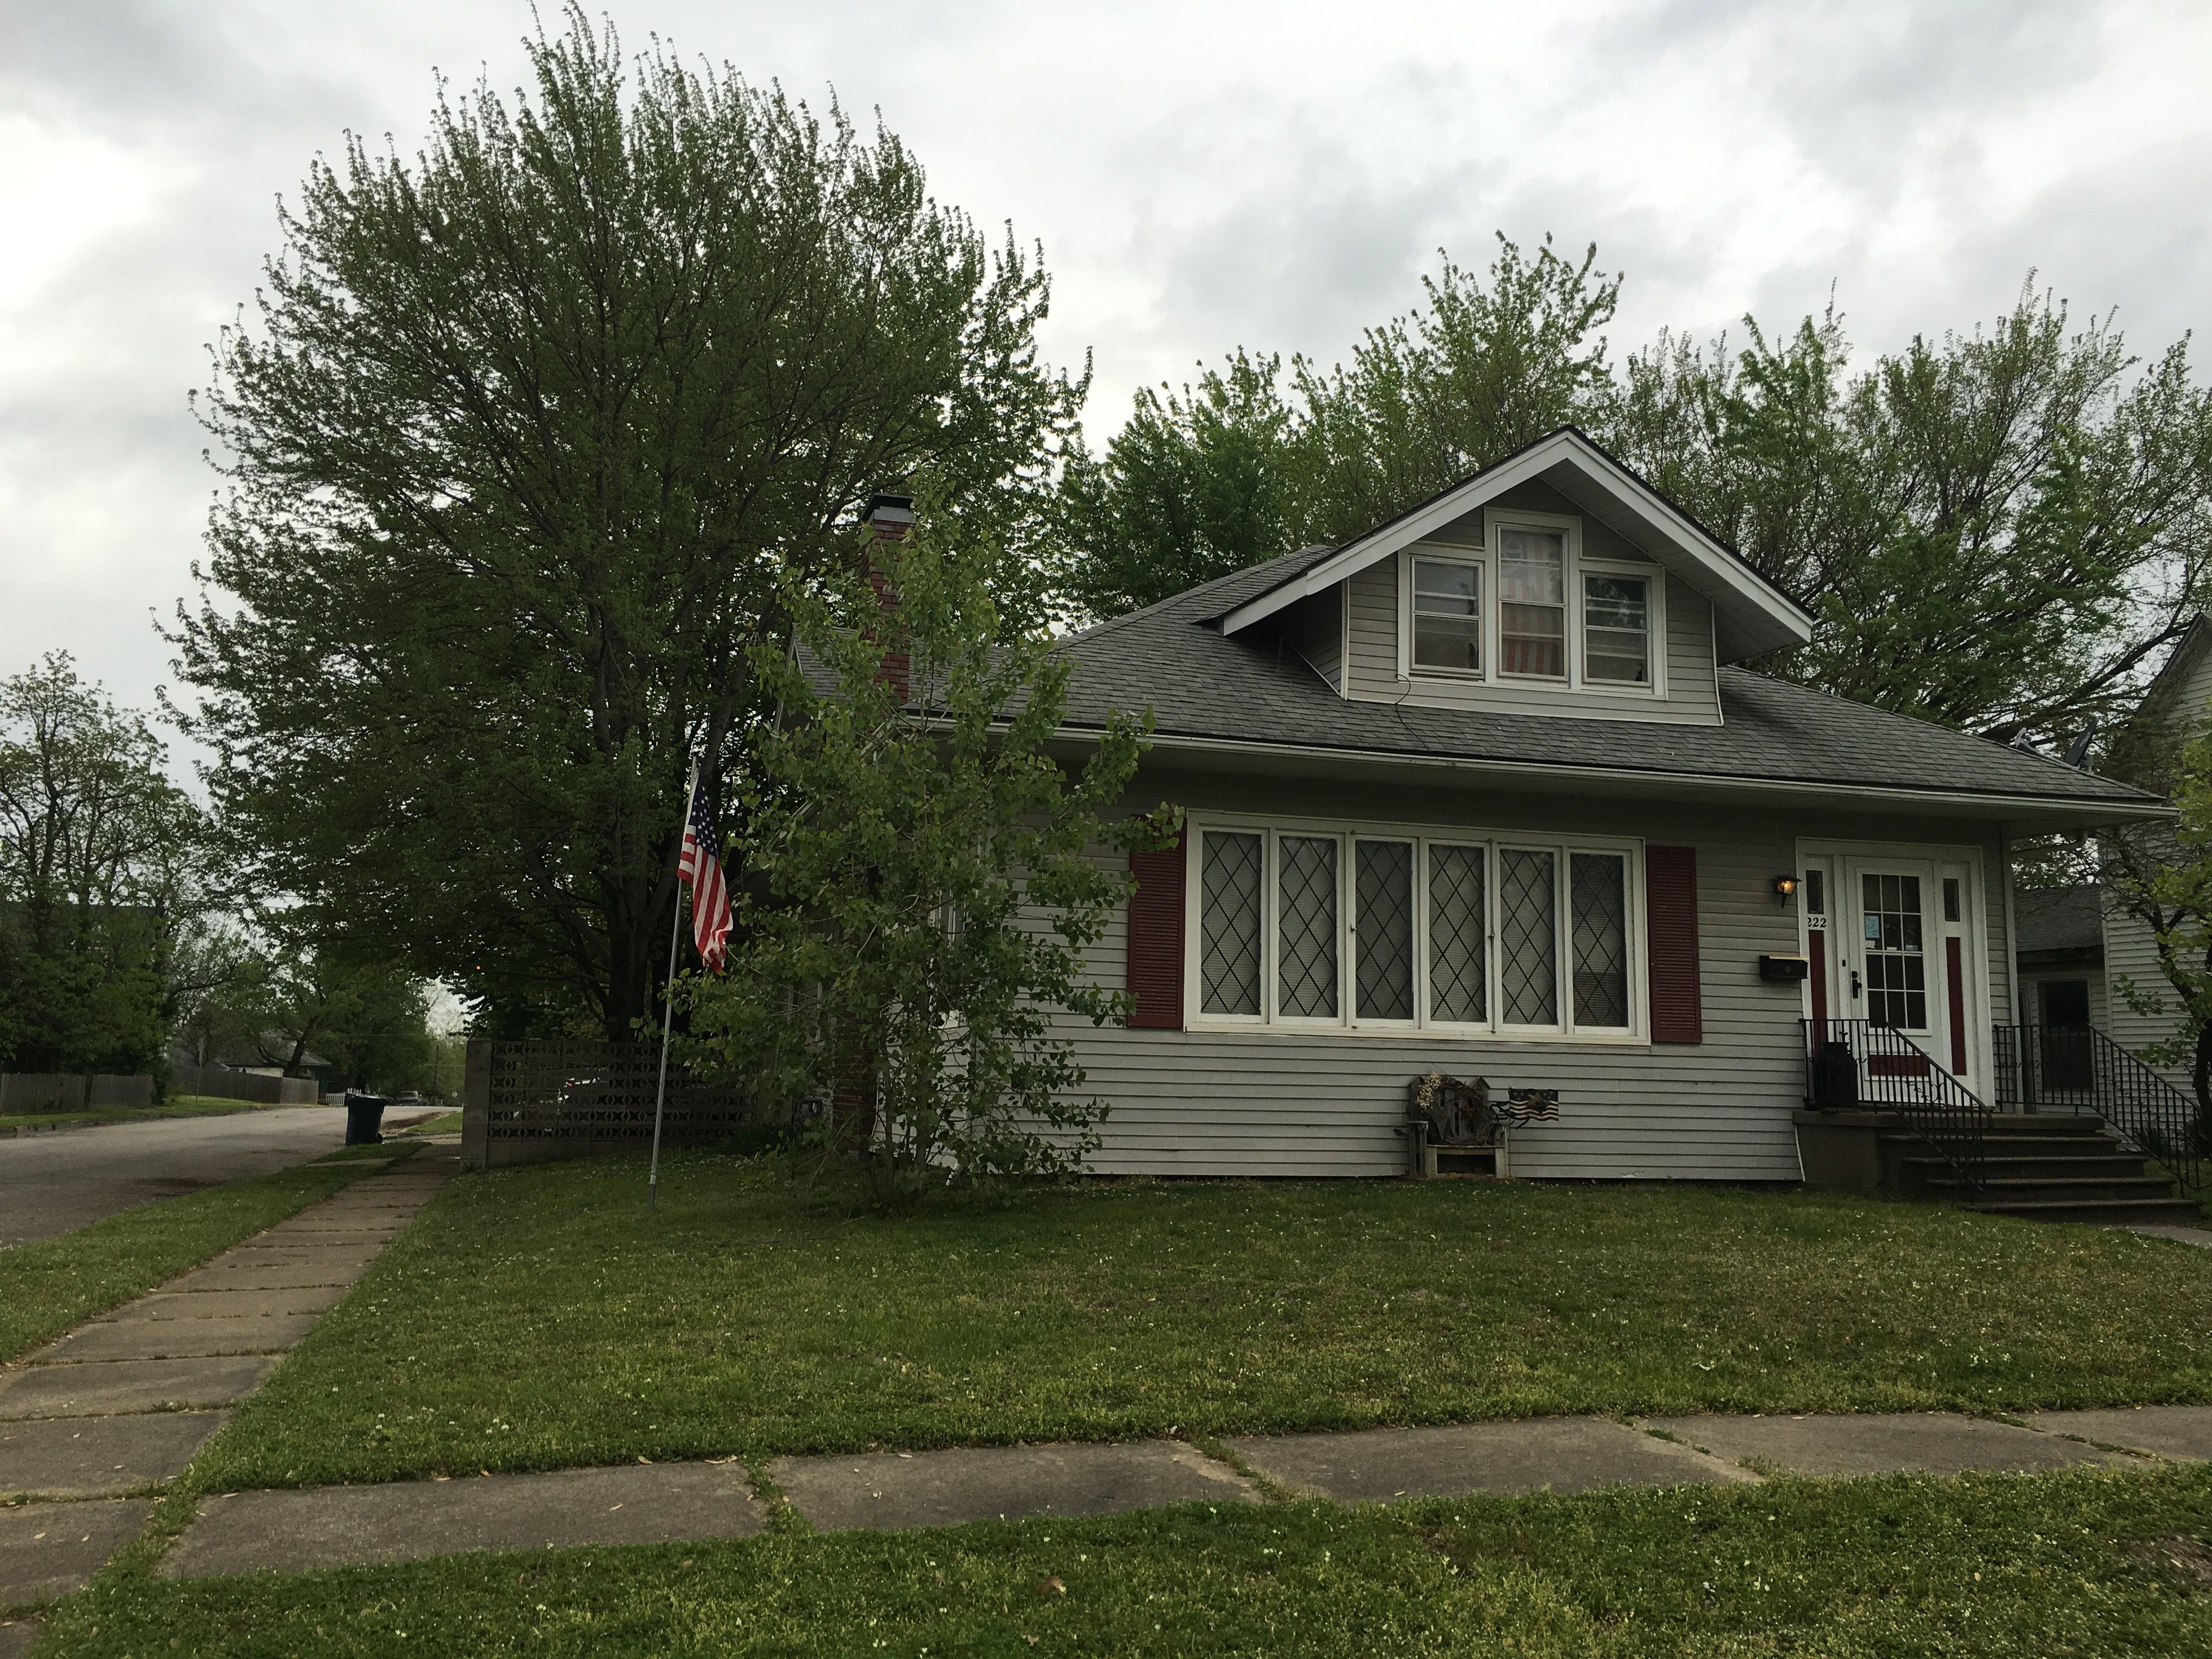 Beautiful 1 1/2 story older conventional home on corner lot. This spacious home features an eat-in kitchen and formal dining room. There are hardwoods through most of the home, large bedrooms and a closed-in front porch. Over 2900 square feet!  Only $114,900  Call Rhonda 417-622-2850